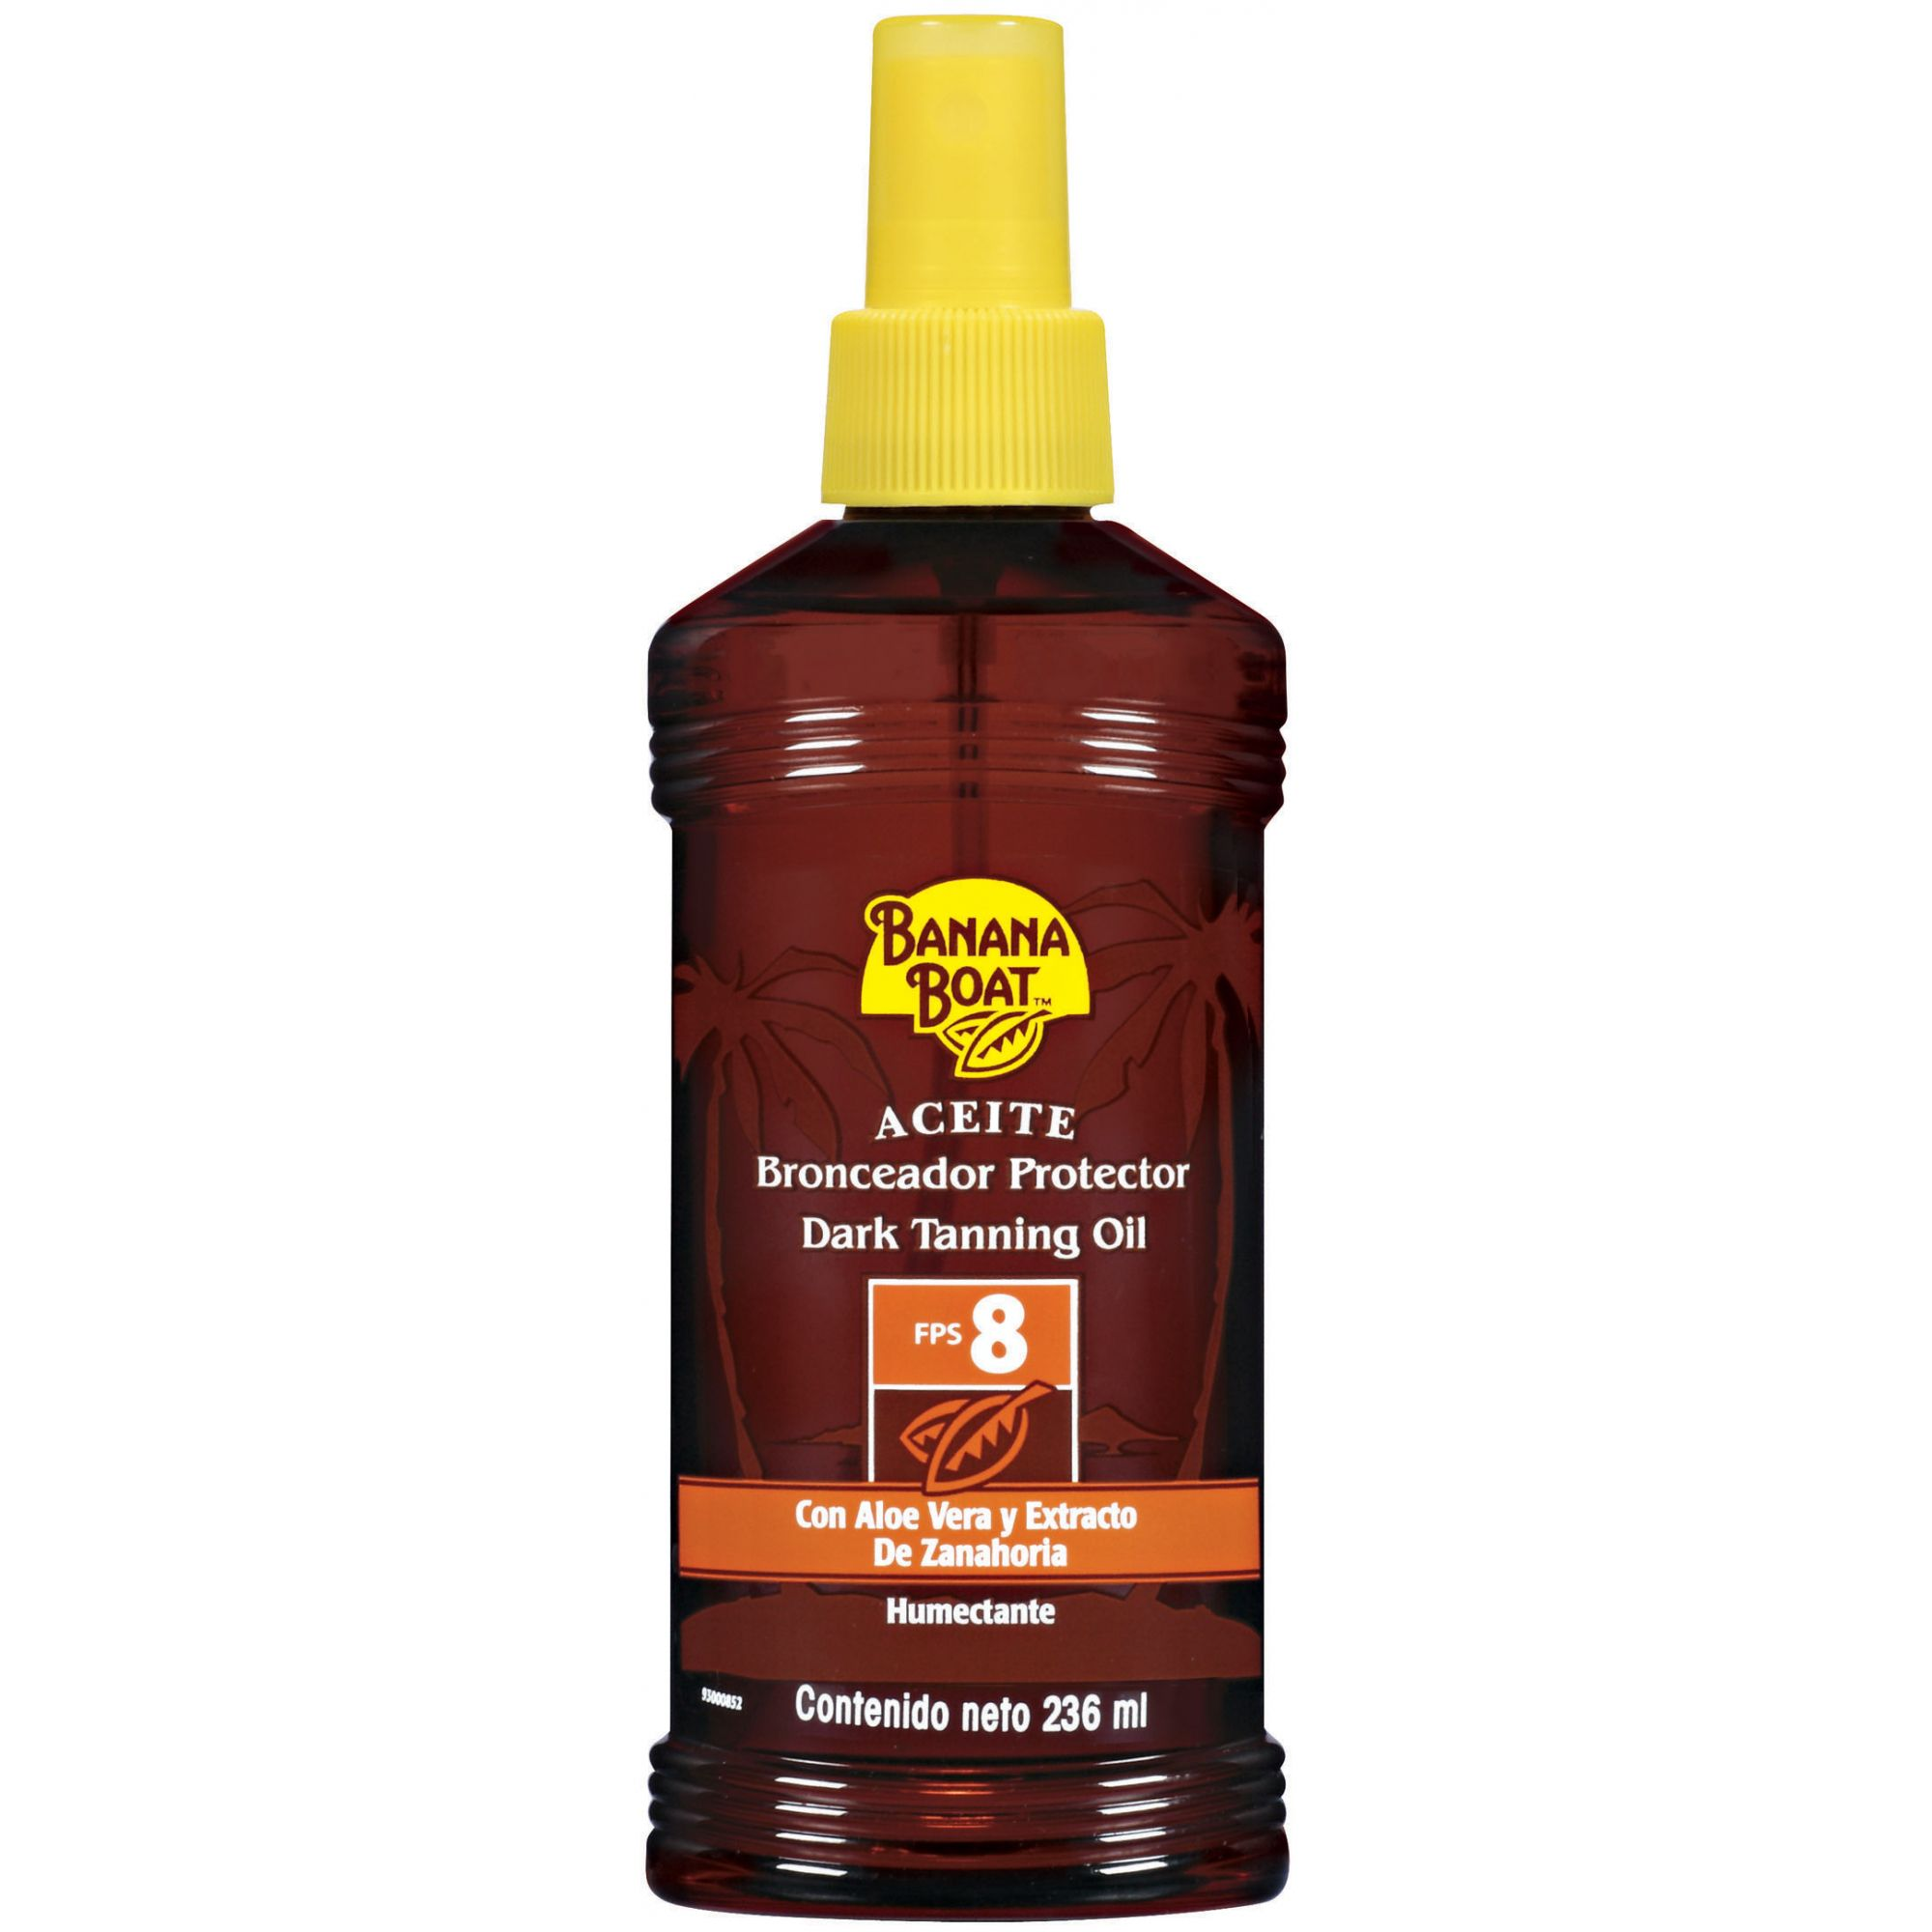 Bronzeador Protetor solar 8 fps Banana Boat Spray 236ml